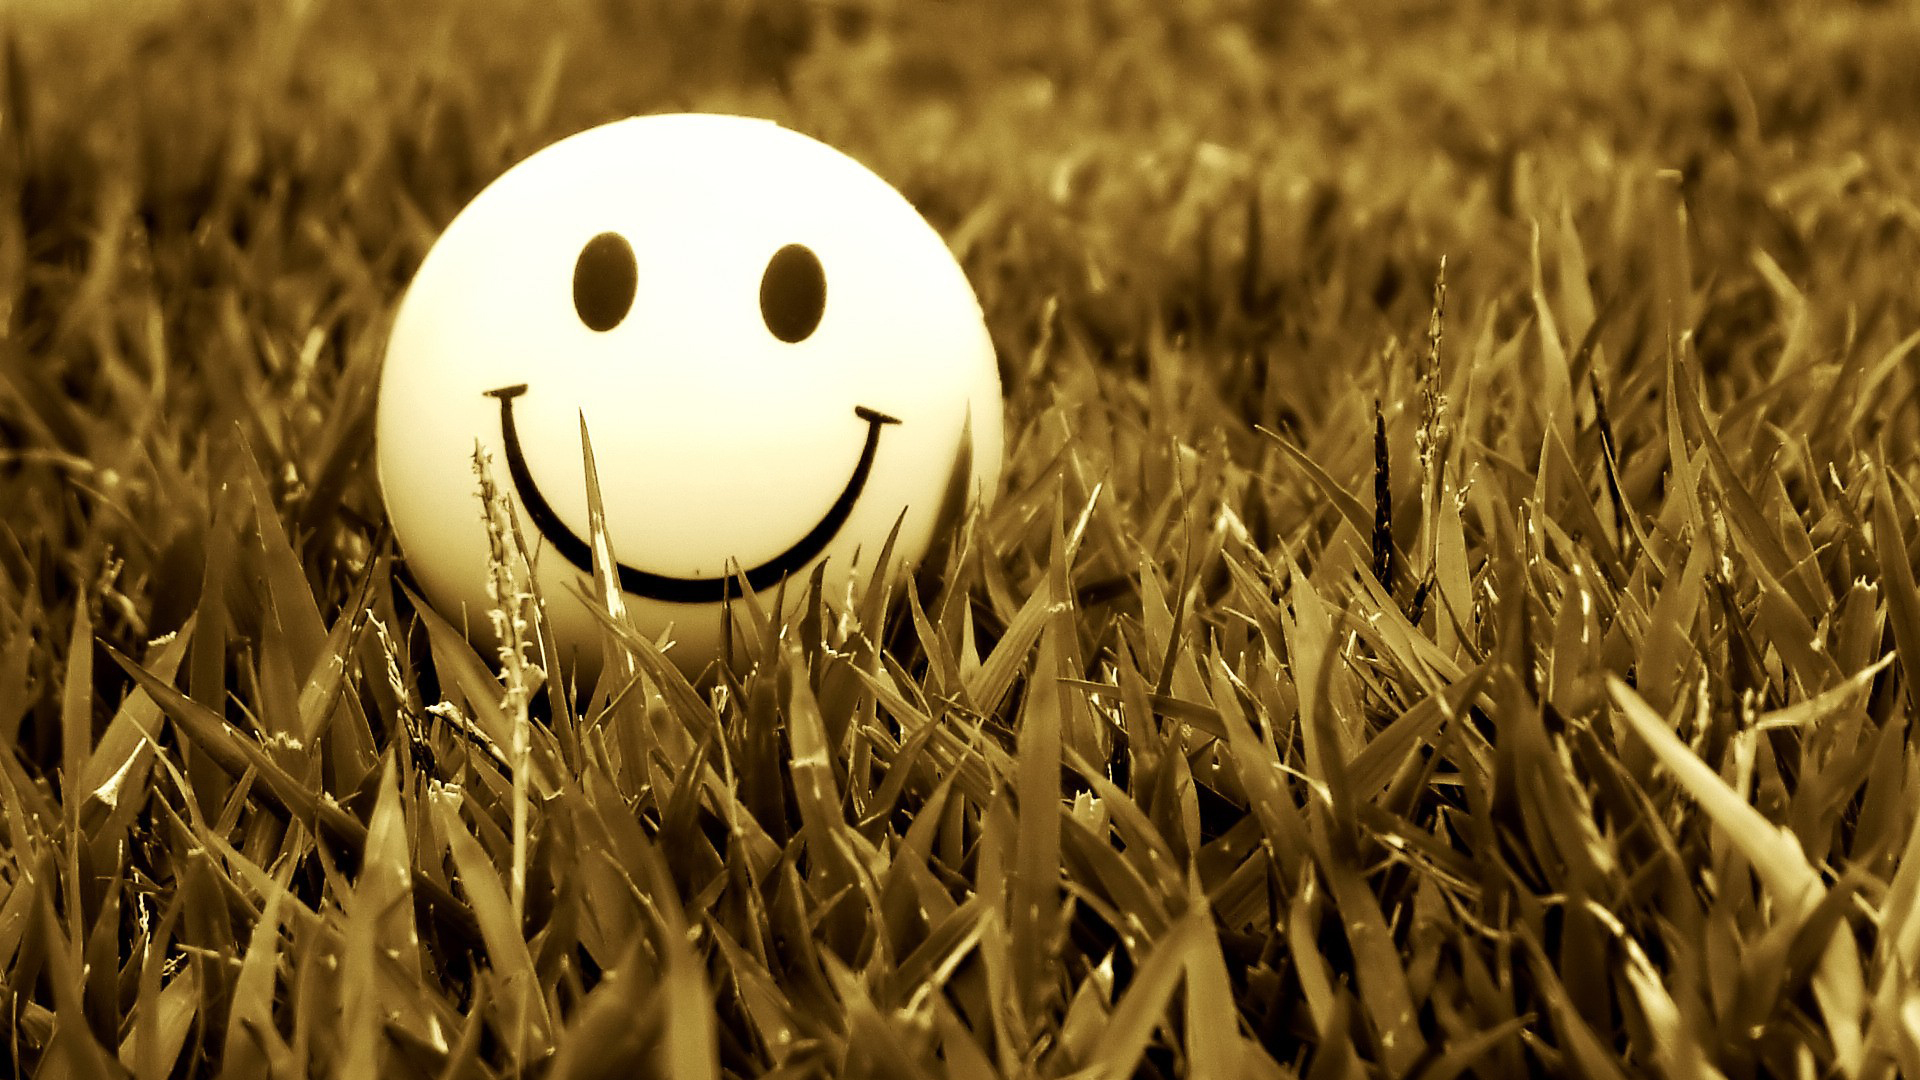 Beautiful Smile Wallpaper 68 Images: Smiley Full HD Wallpaper And Achtergrond